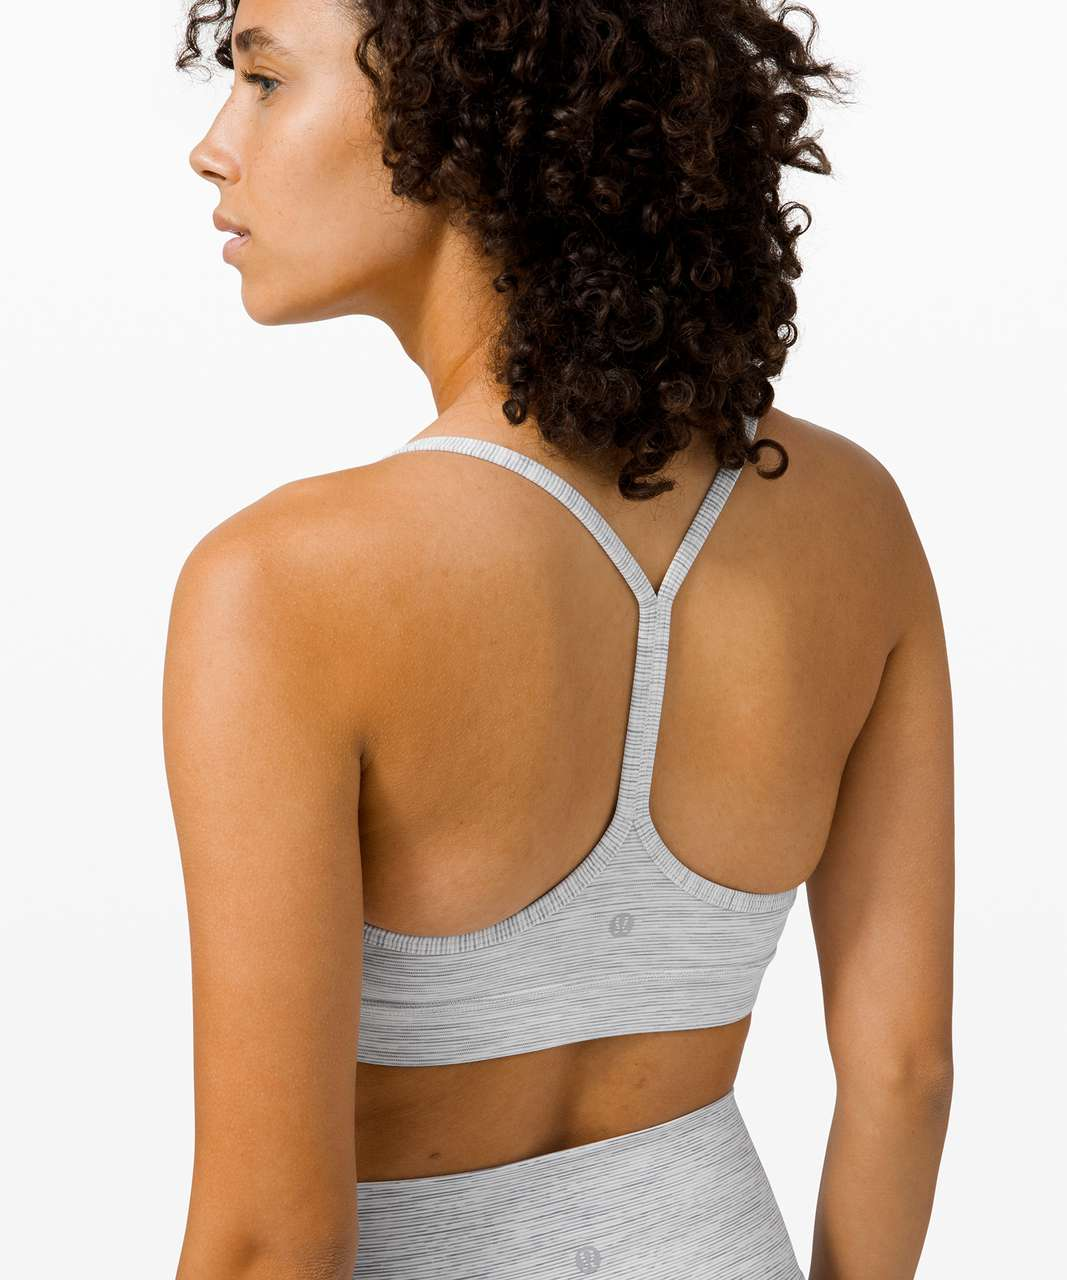 Lululemon Flow Y Bra Nulu *Light Support, B/C Cup - Wee Are From Space Nimbus Battleship